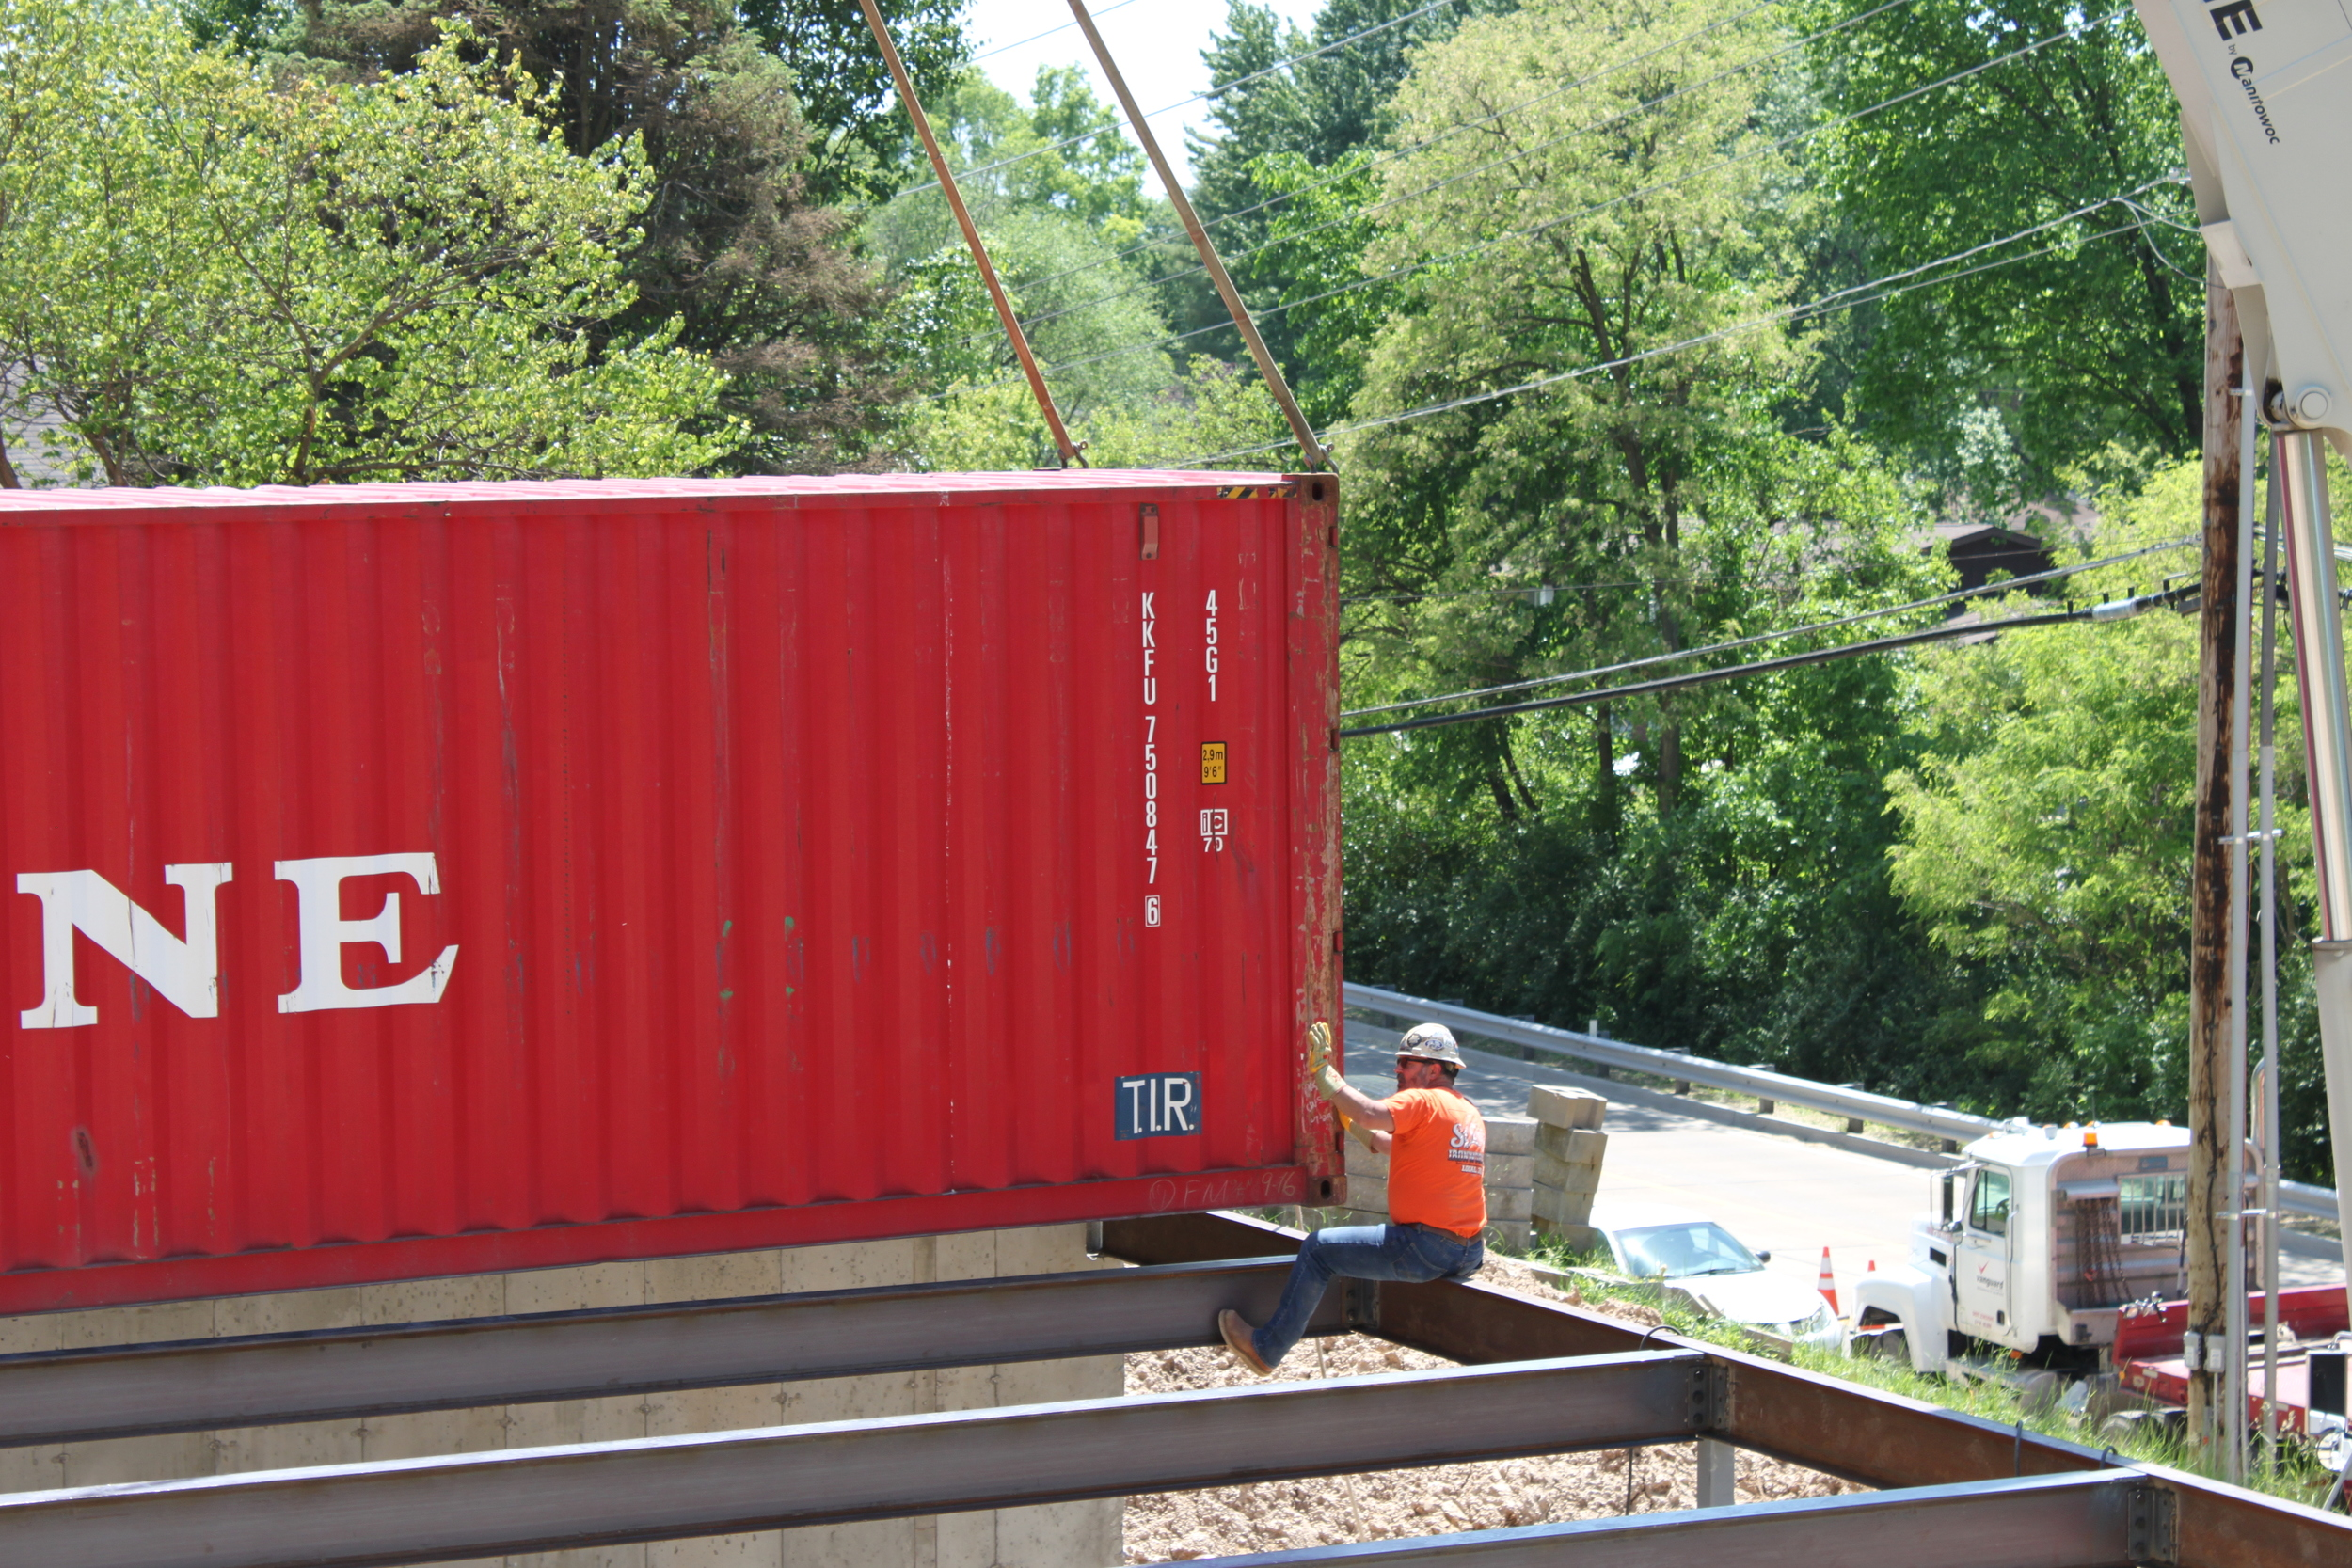 Making sure the container is just right